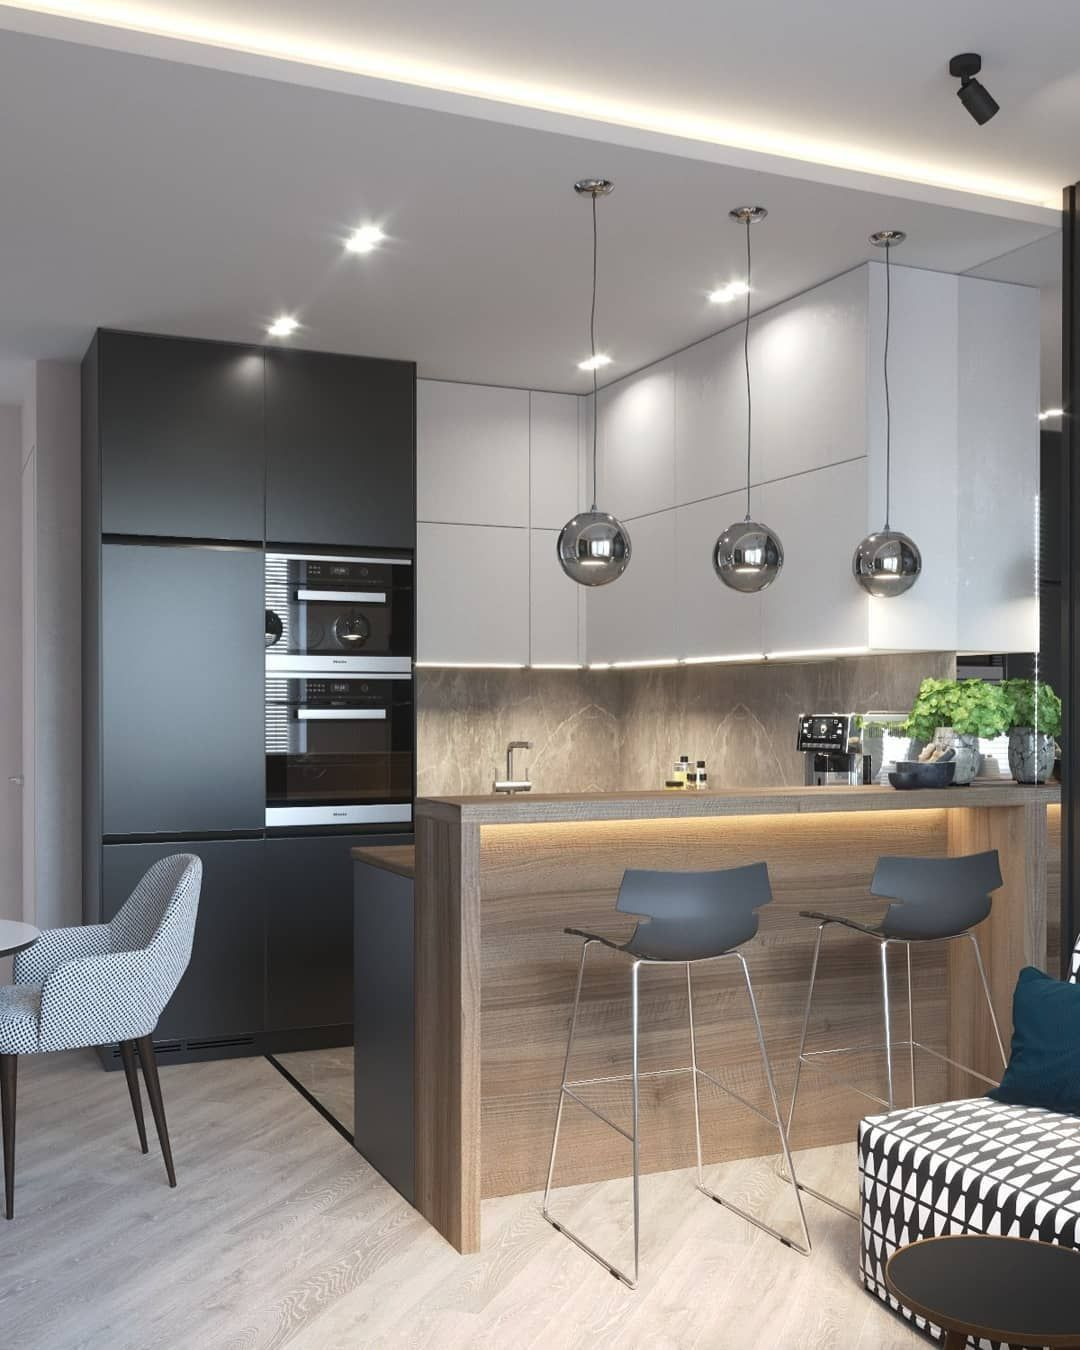 Are You Dreaming About Having A Unique Kitchen That Can Be The Center Of Attention In Interior Design Modern